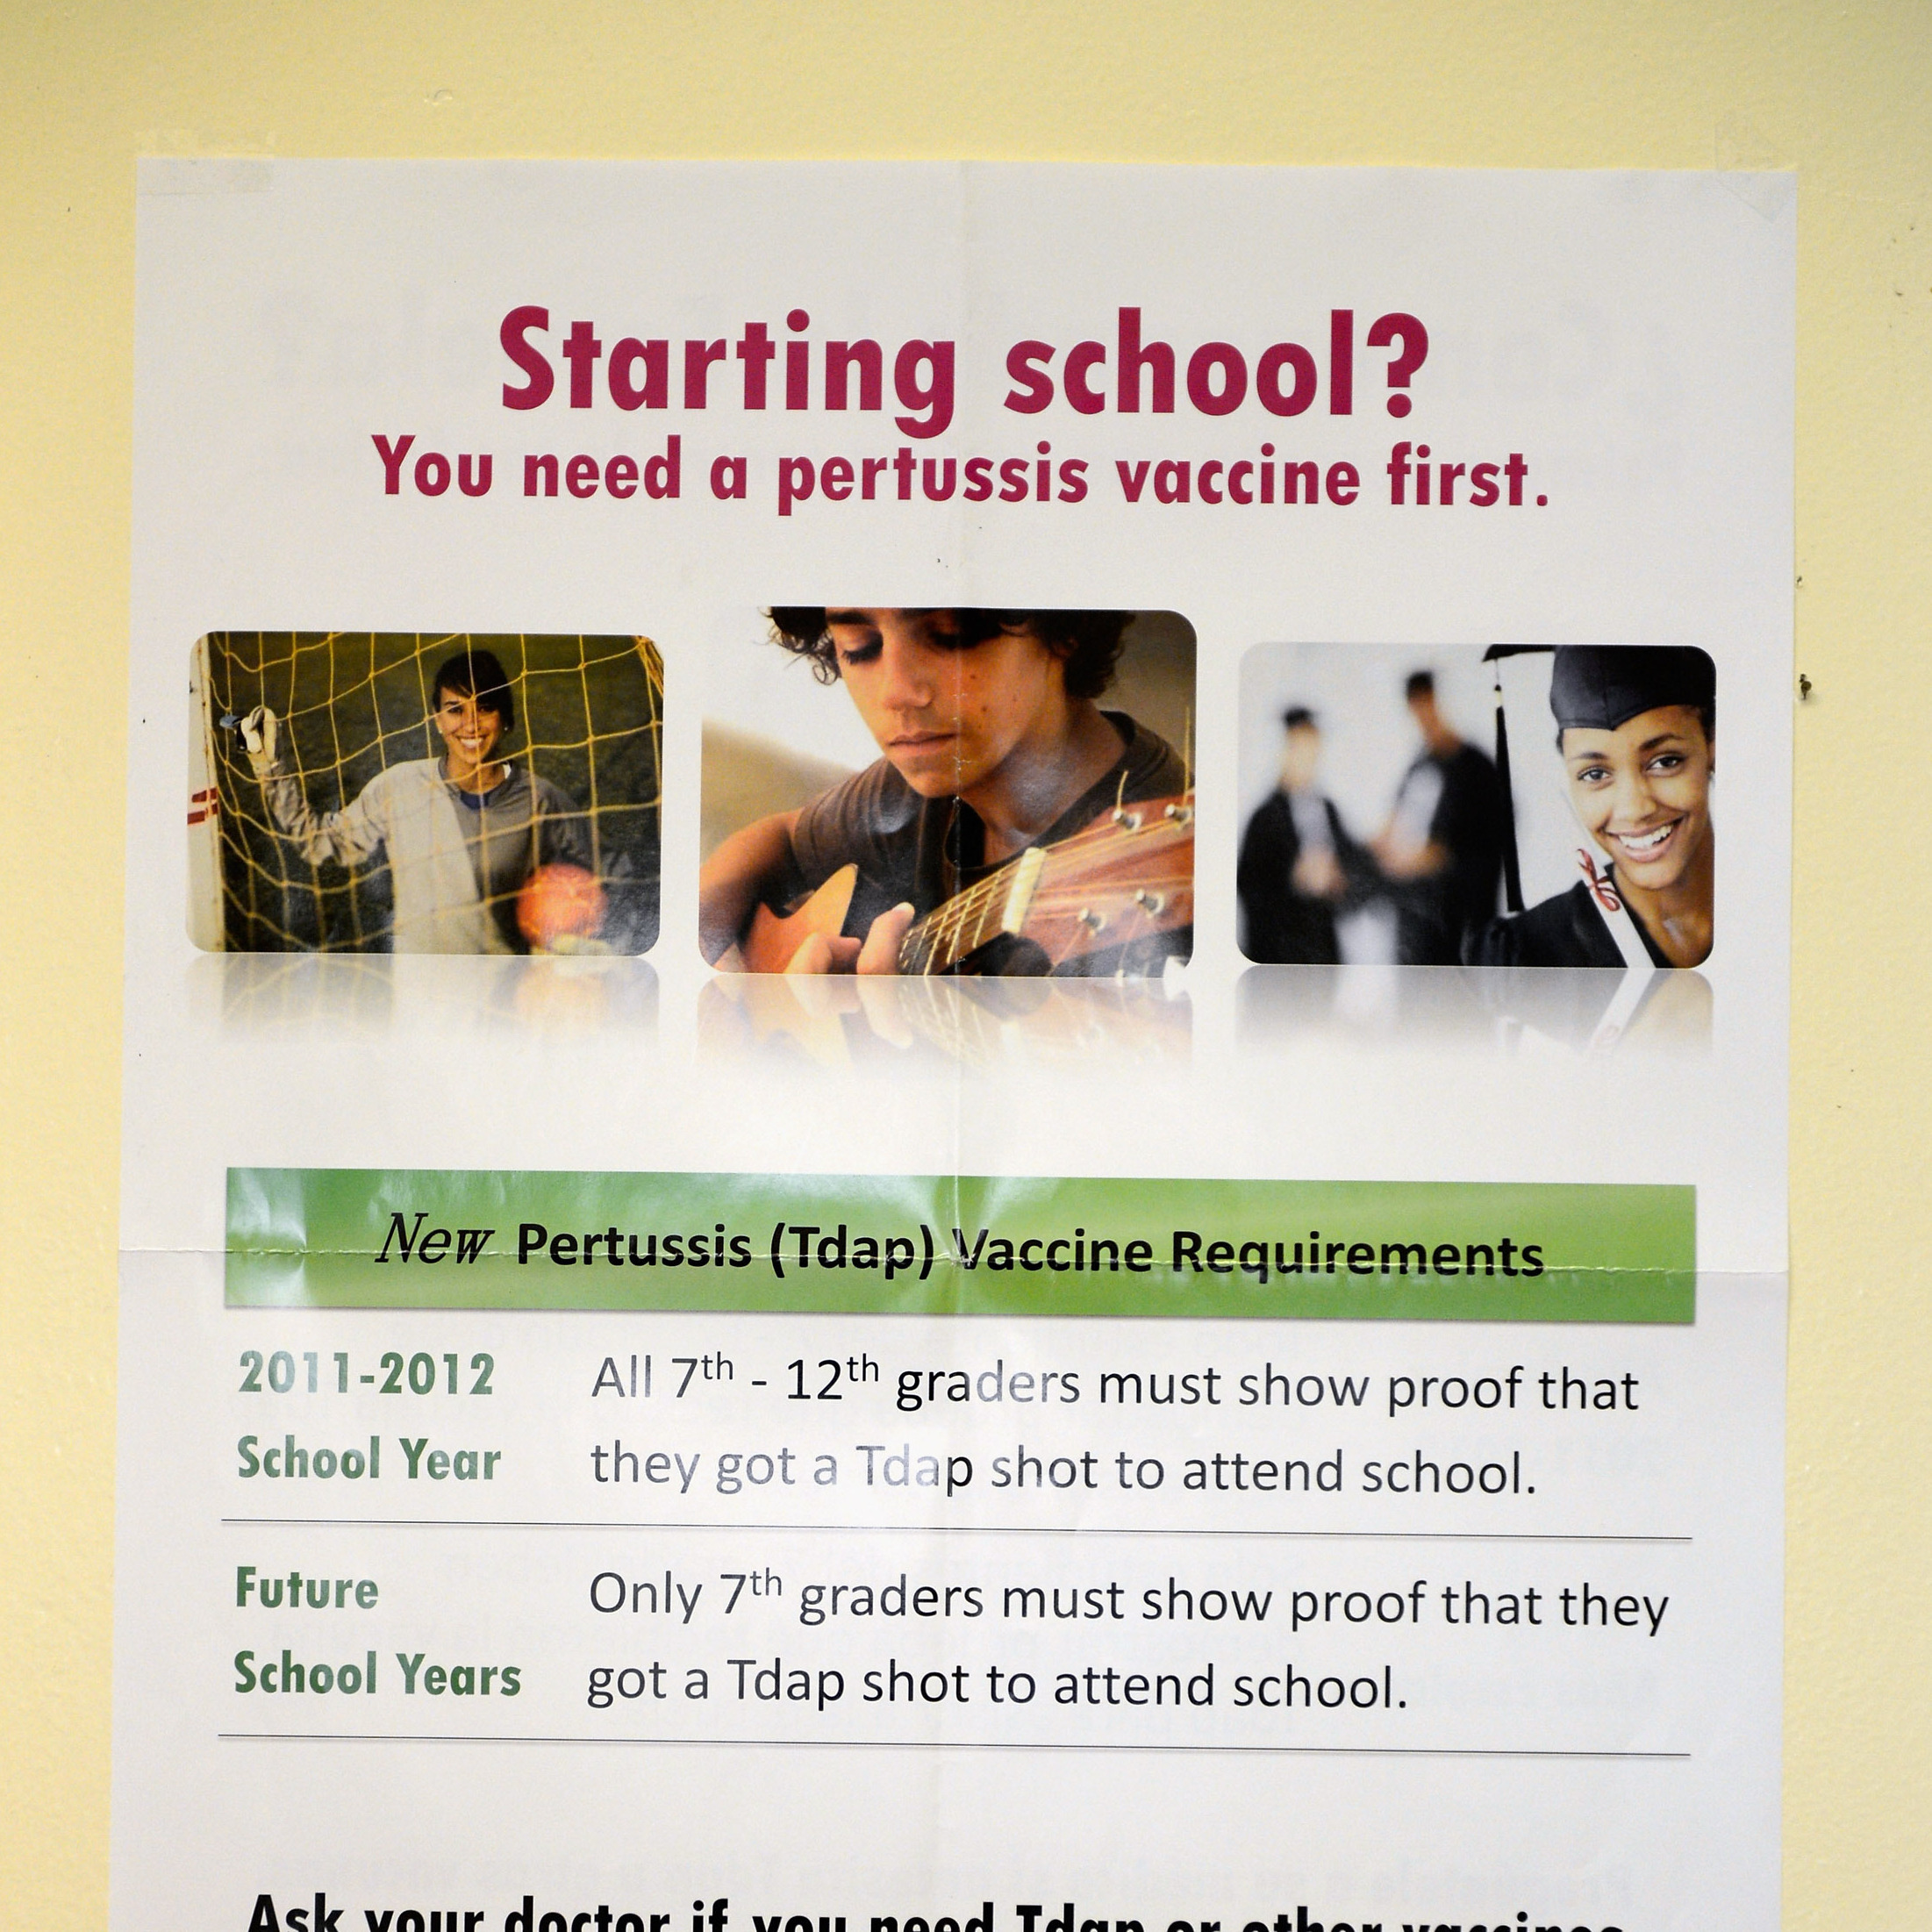 Students in a Los Angeles middle school were notified in August 2012 of new state requirements that they get vaccinated for pertussis.